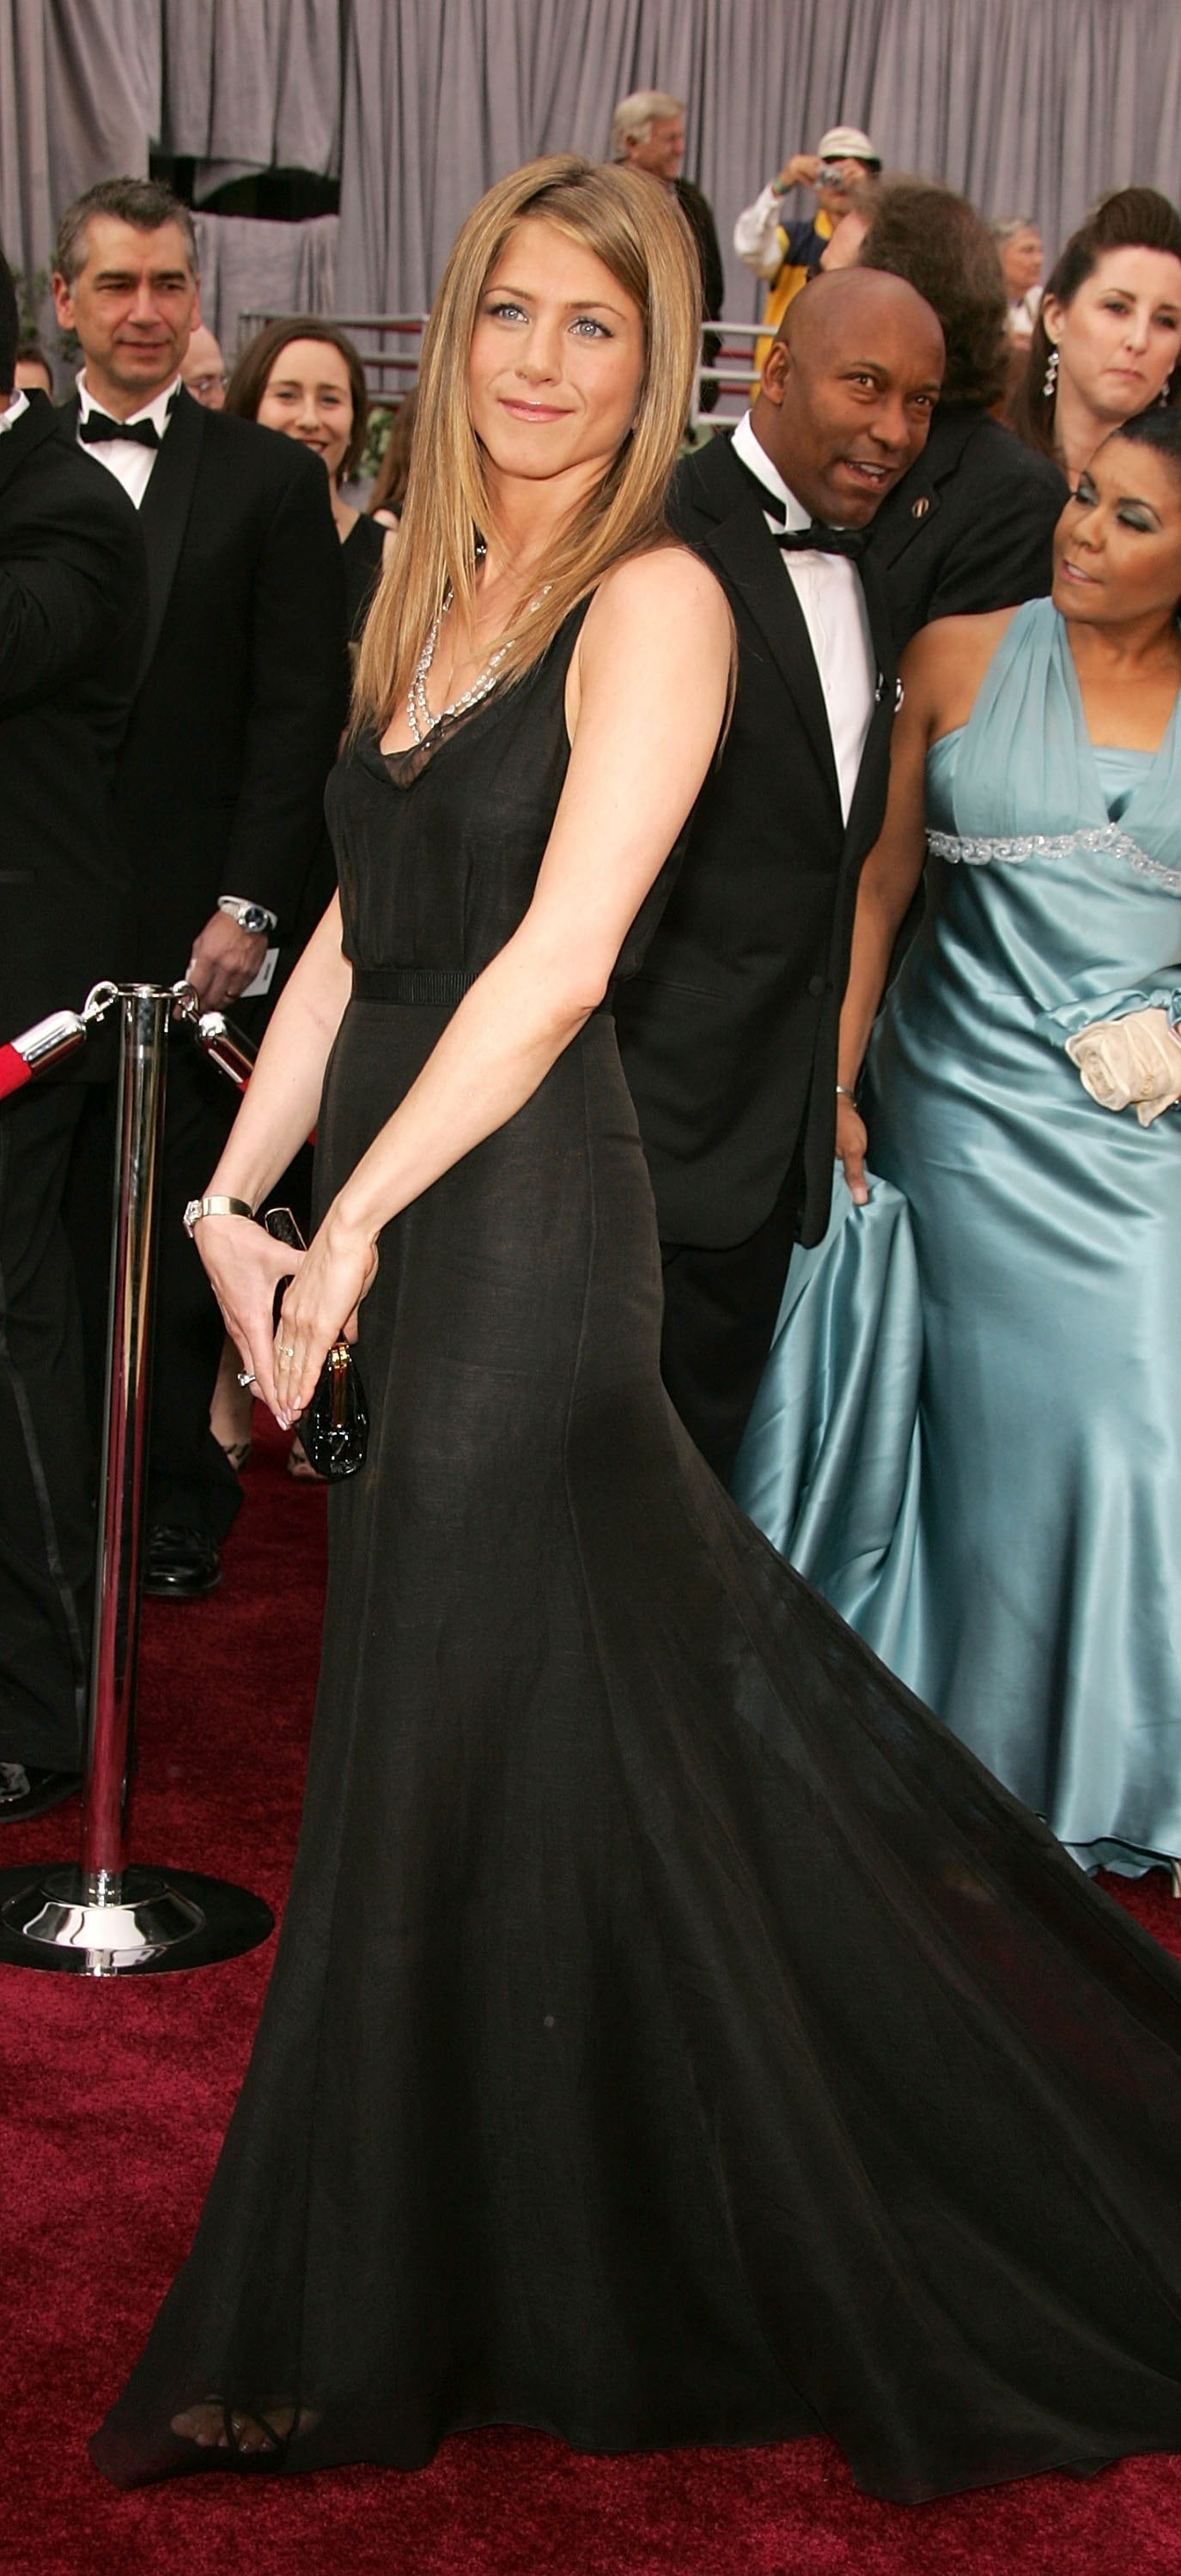 March 2006: Academy Awards